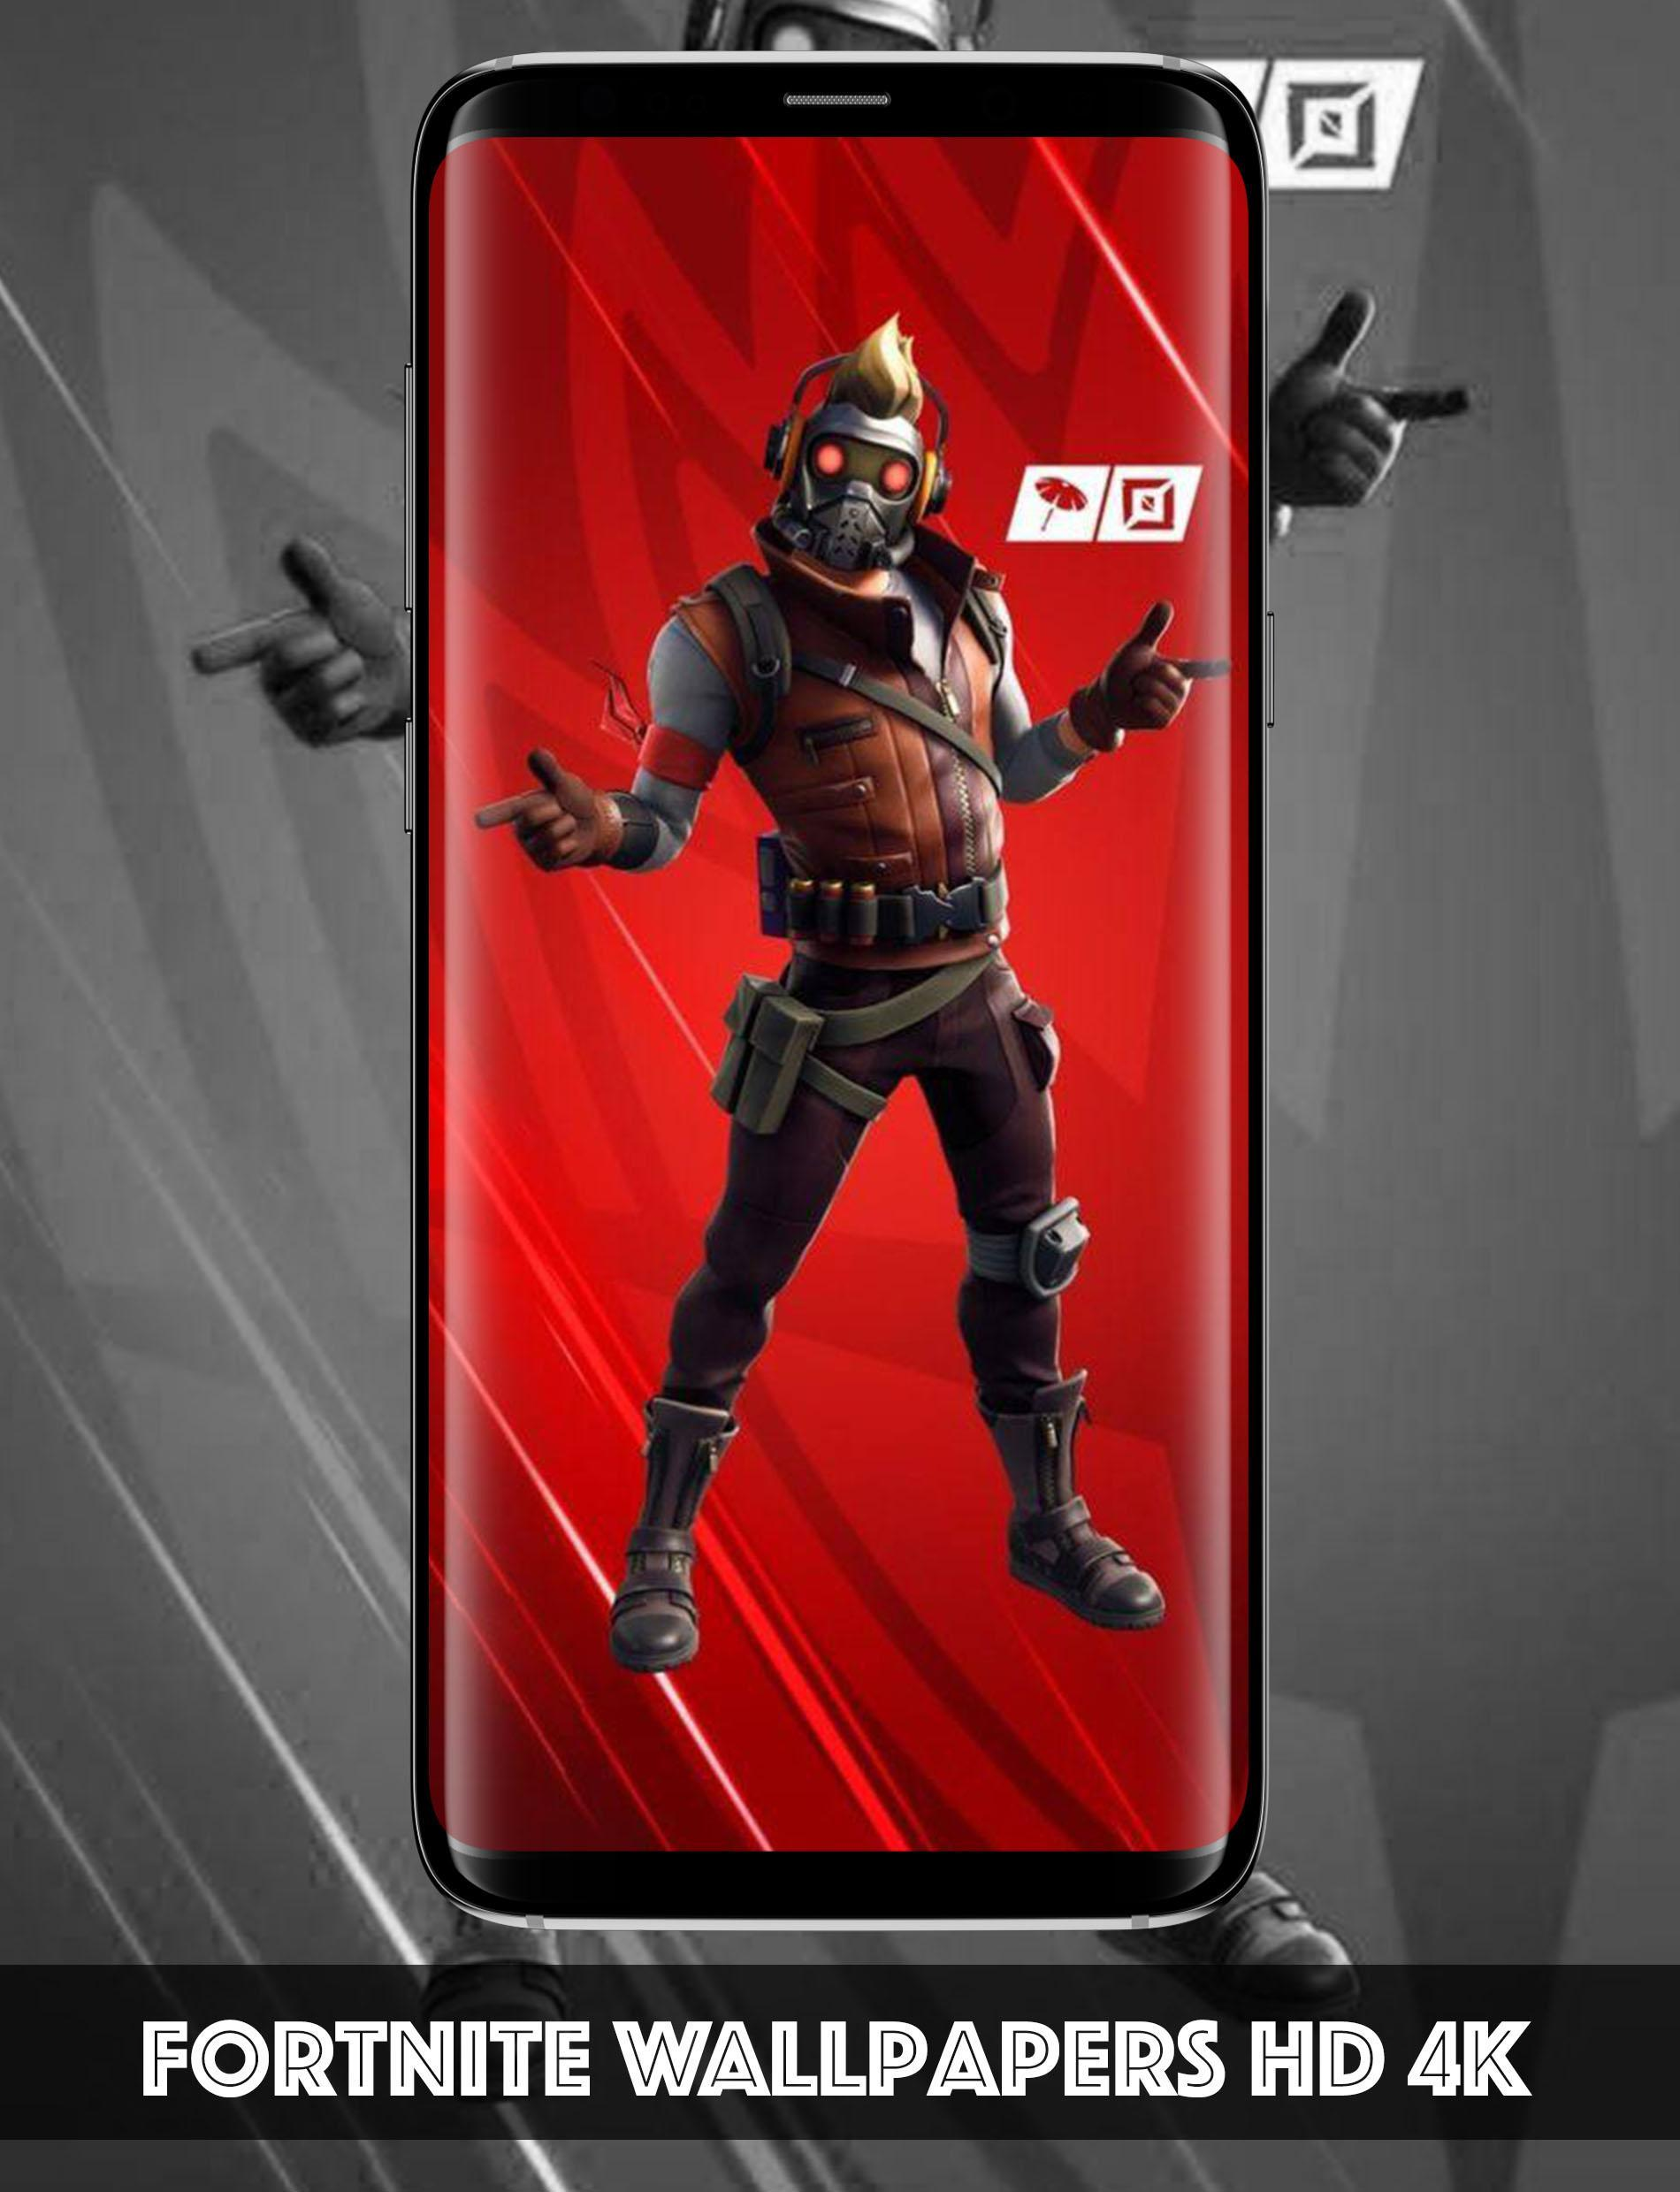 Fortnite Wallpapers Hd New Seasons 10 Skins For Android